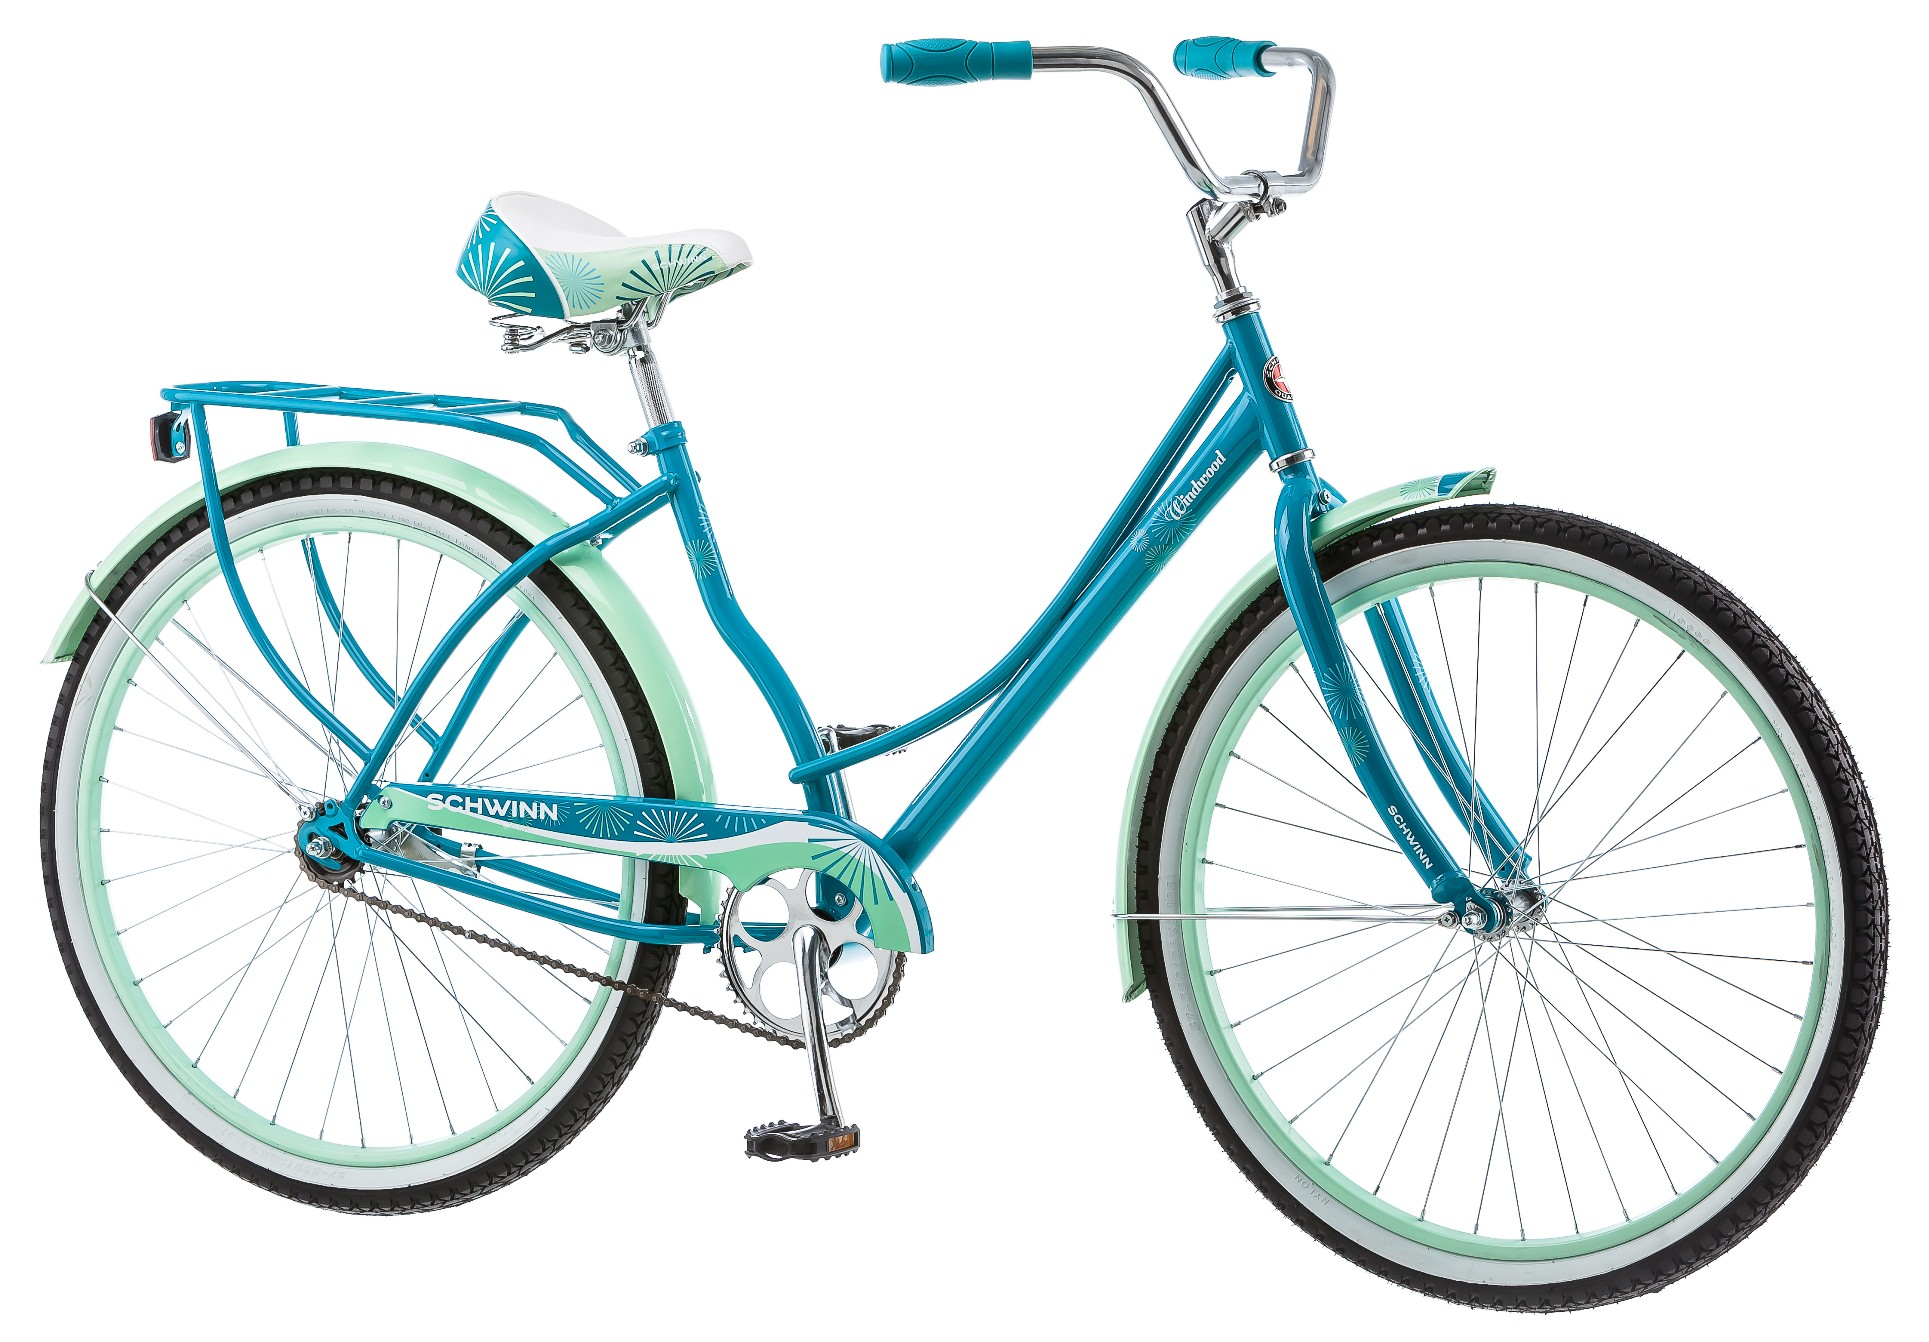 Schwinn Windwood 26 Inch Women's Bike